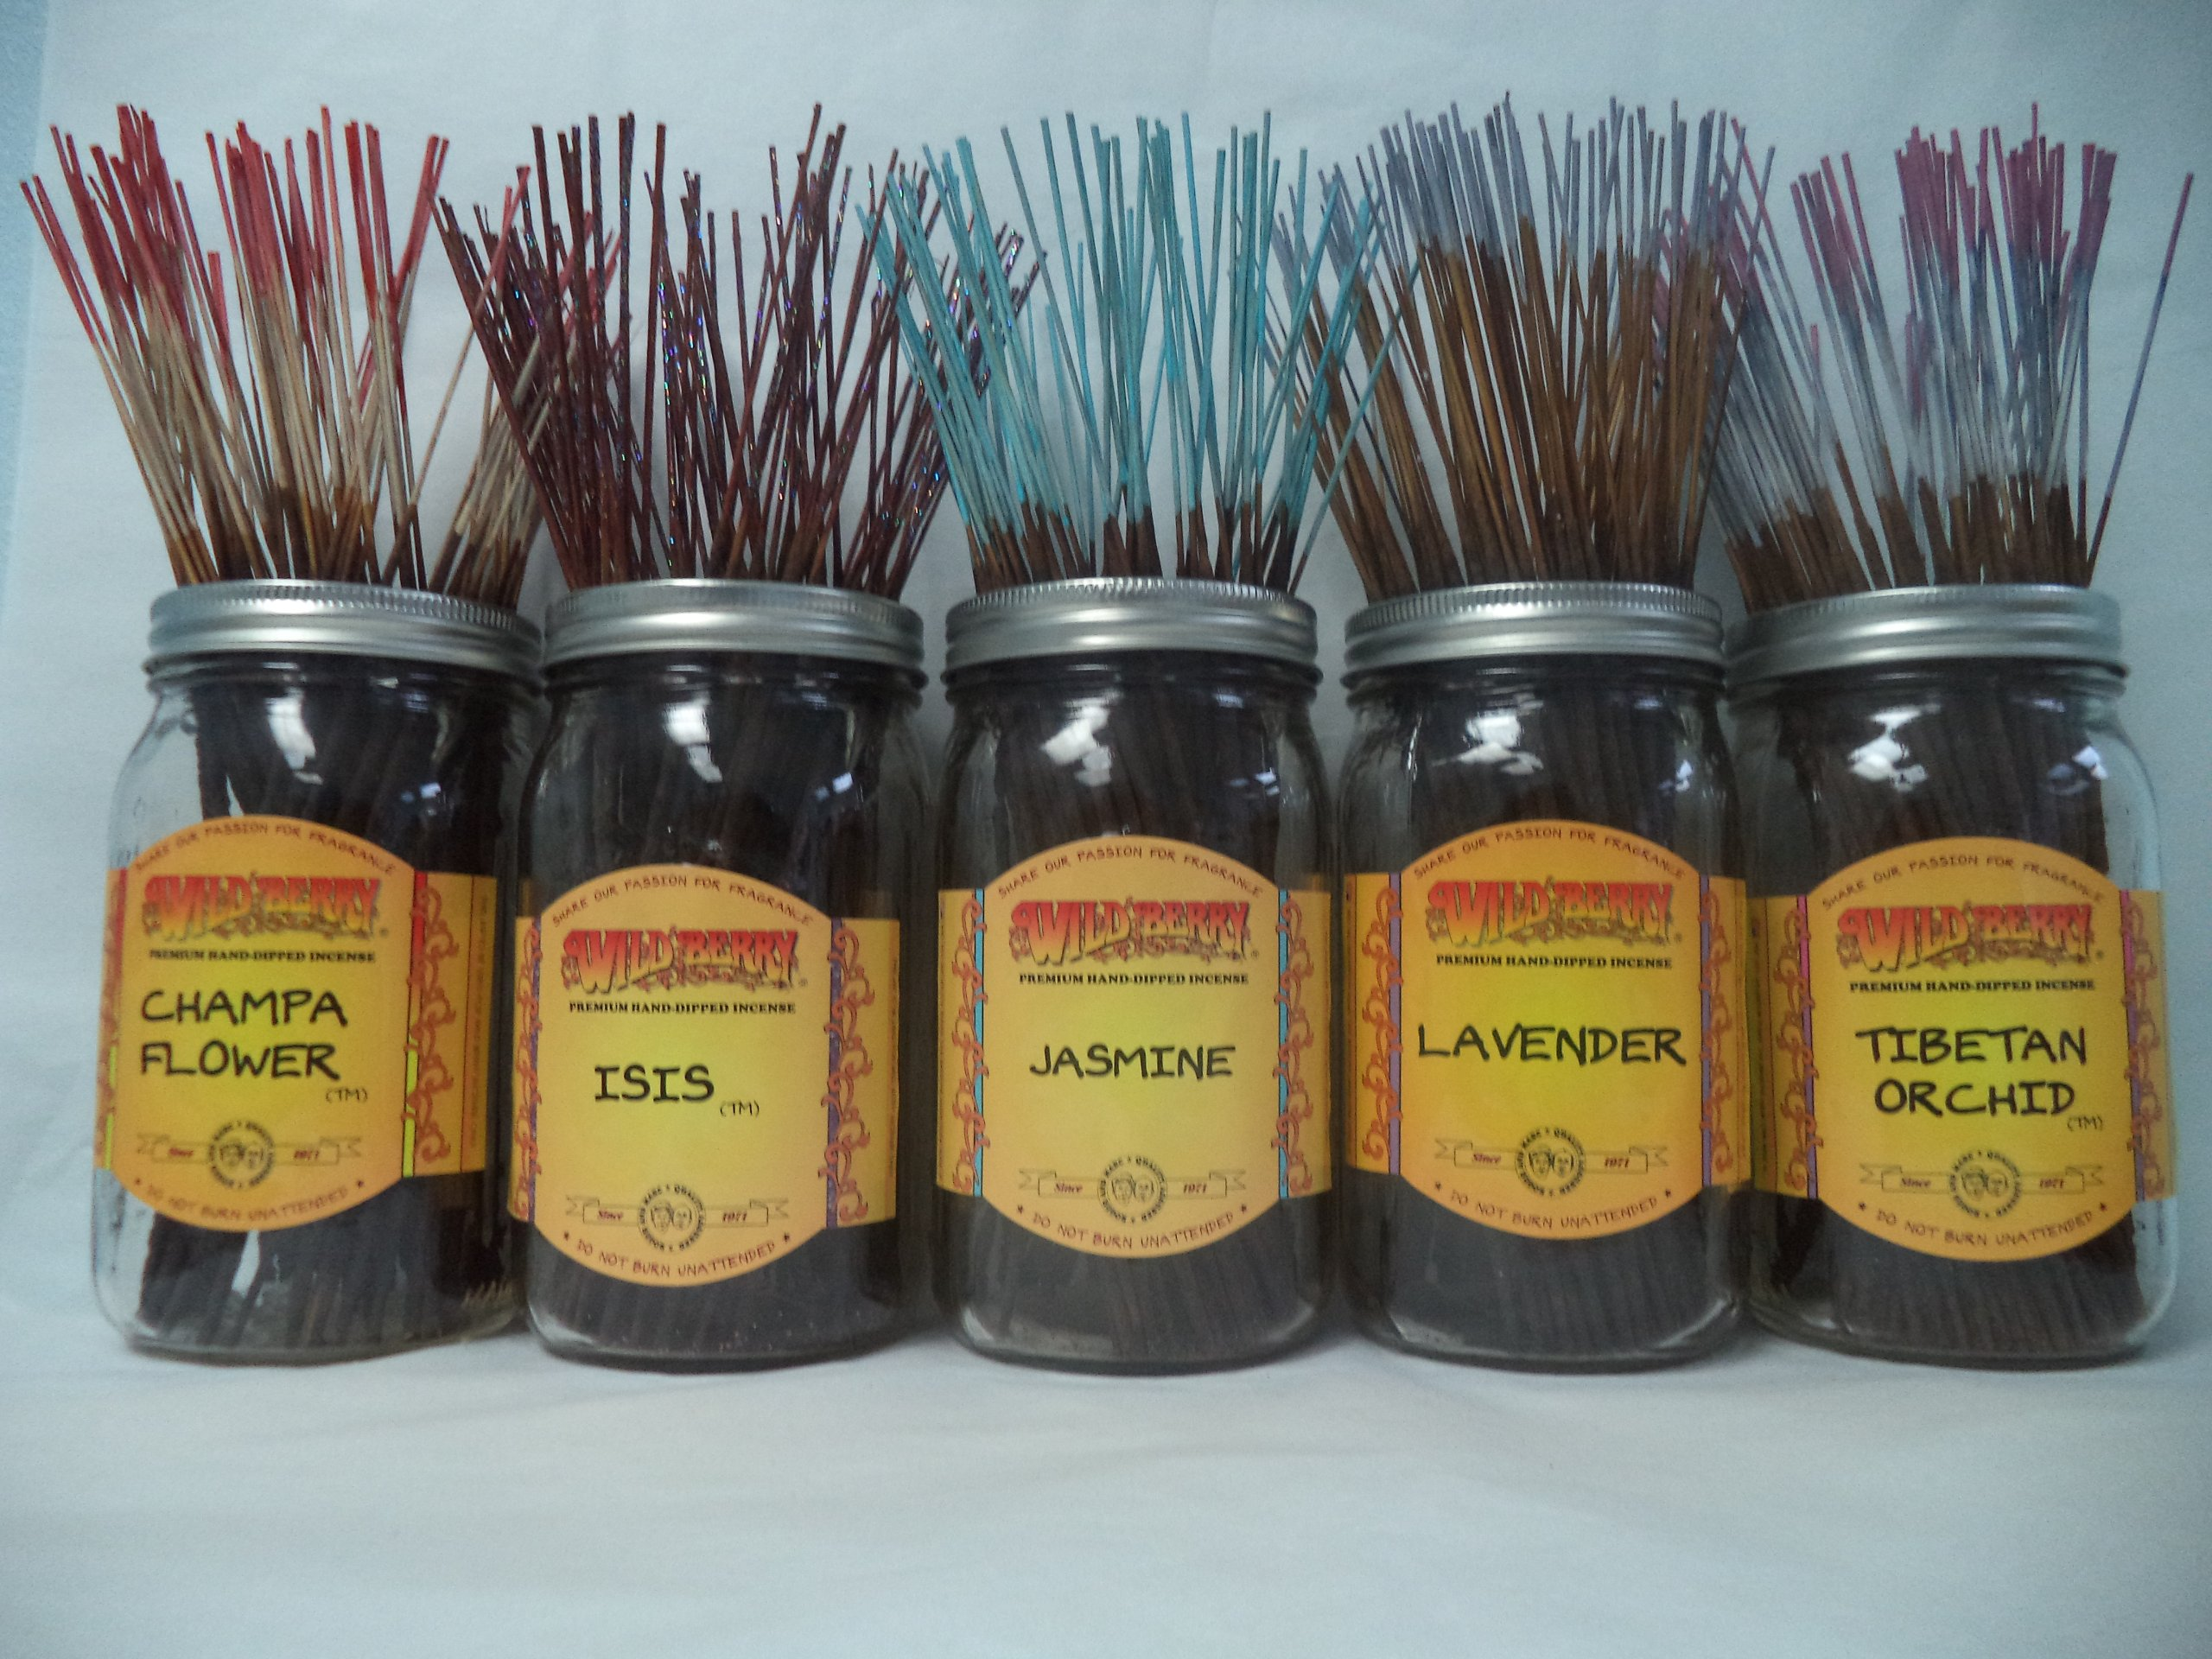 Wildberry Incense Sticks Florals & Greens Scents Set #1: 20 Sticks Each of 5 Scents, Total 100 Sticks!